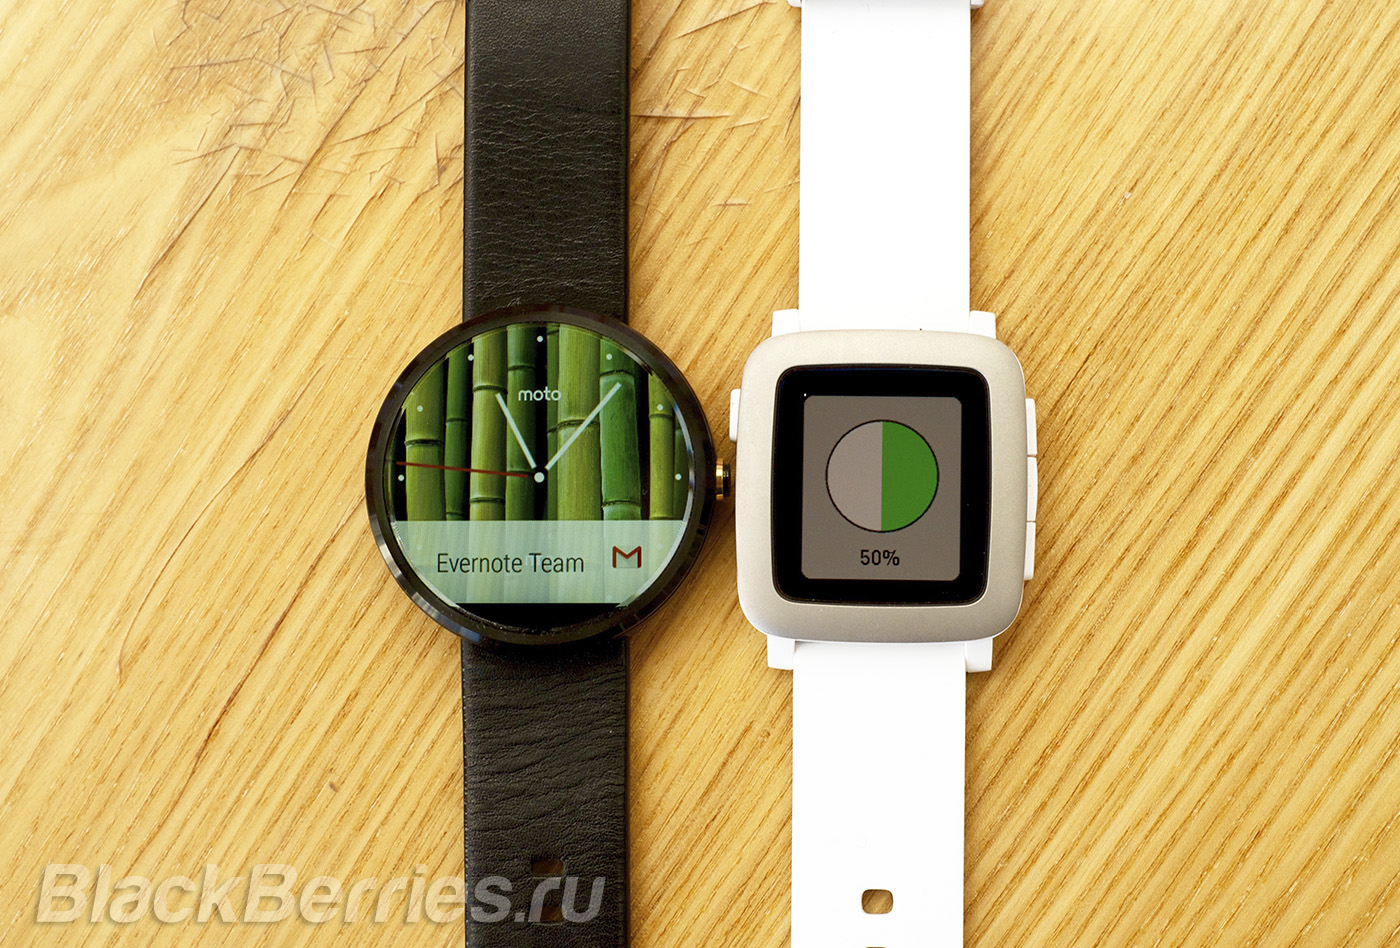 BlackBerry-Passport-Pebble-Time-19